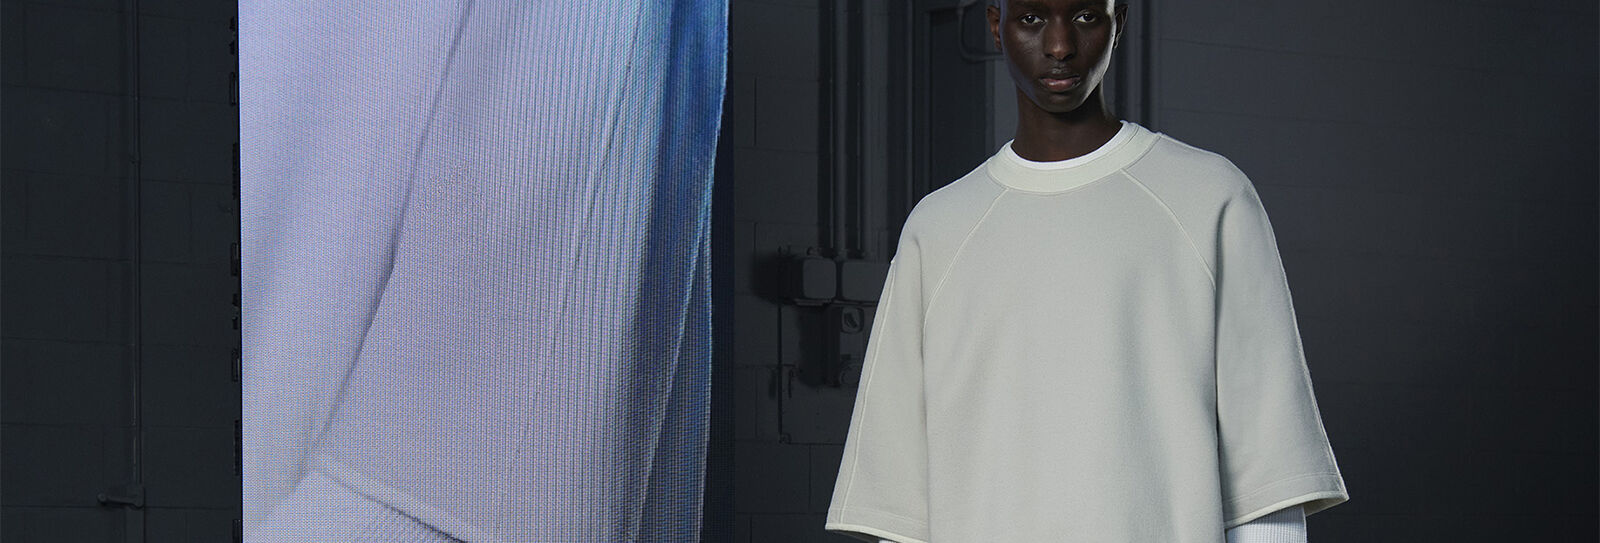 Model wearing a an oversized light gray t-shirt beside an extreme close-up of the sleeve.